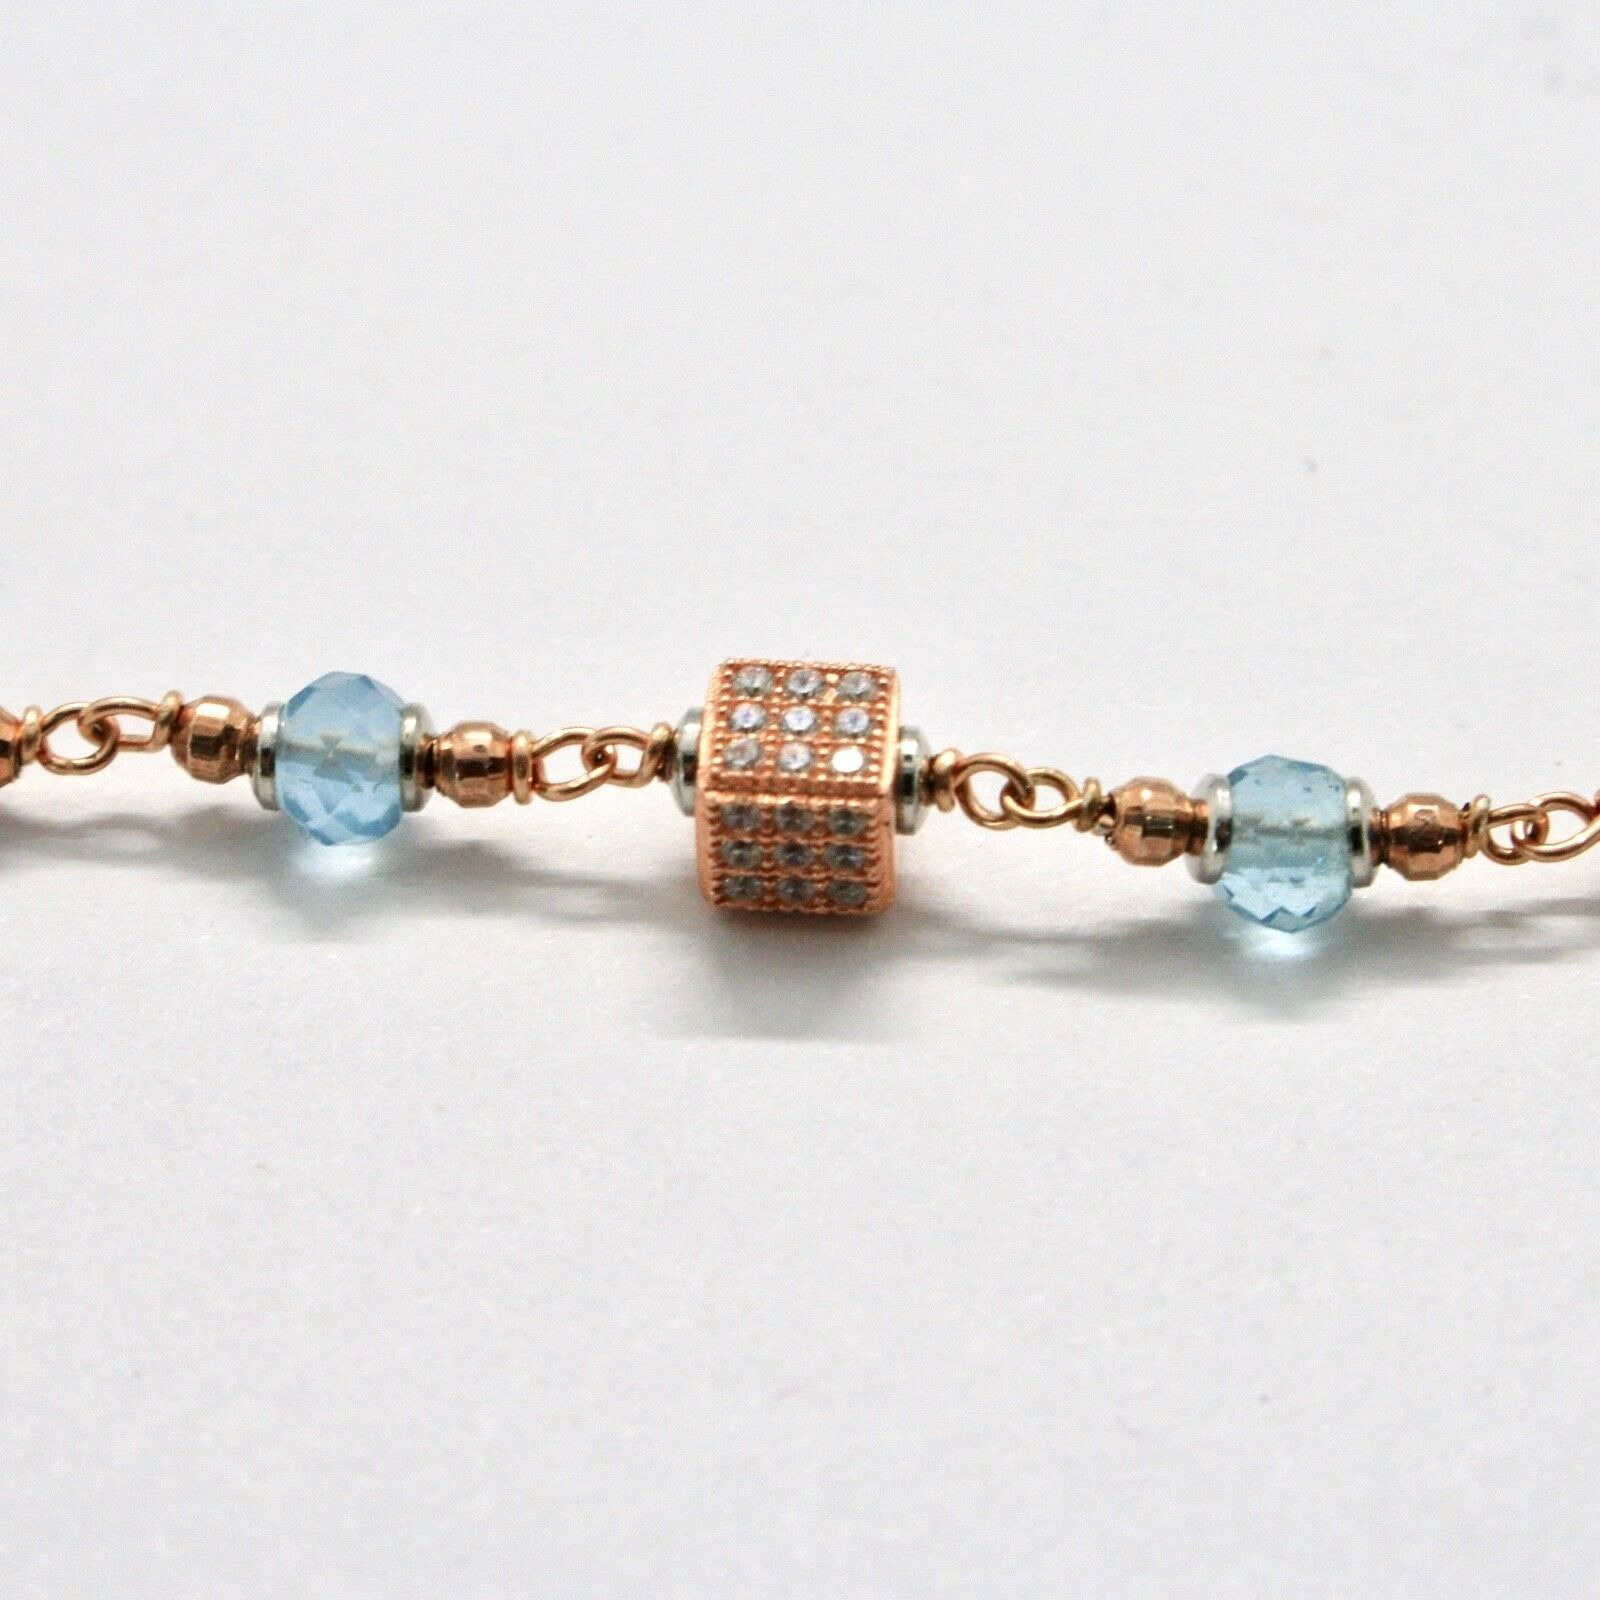 Silver Bracelet 925 Laminated in Rose Gold with Aquamarine and Zircon Cubic image 7